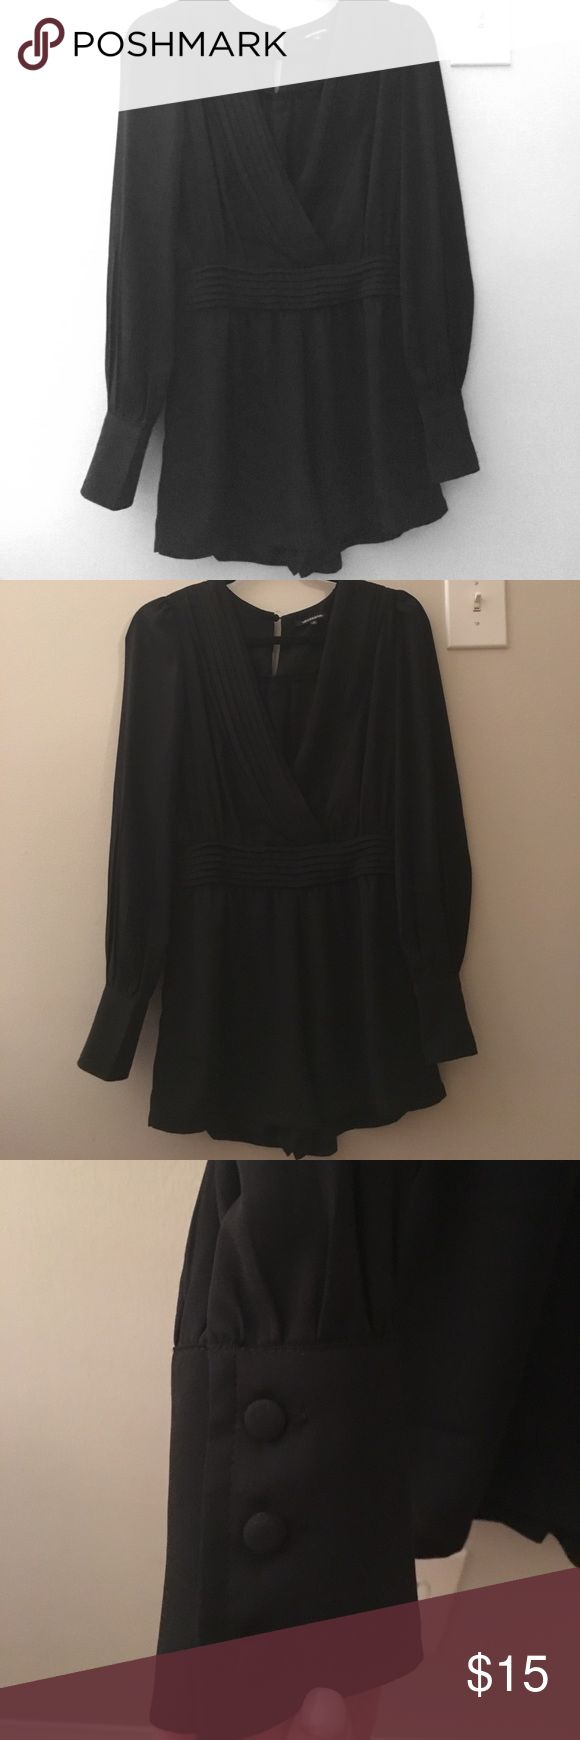 Black long sleeve romper Black long sleeve romper with button closure  at the top. Buttons on sleeves. Tobi Other